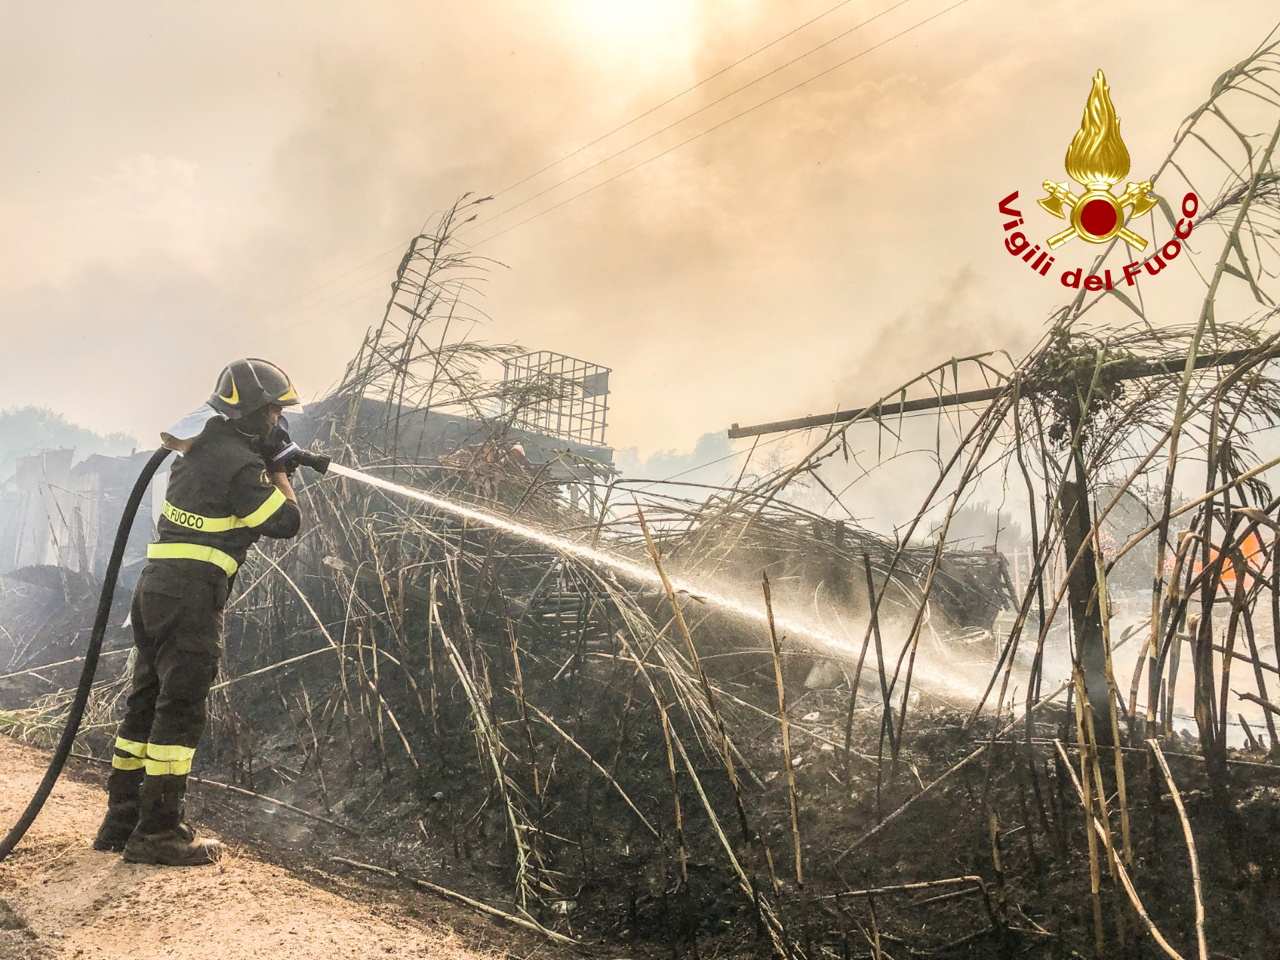 A firefighter battles the flames after a large wildfire broke out near Santu Lussurgiu, Sardinia, Italy July 24, 2021. Vigili del Fuoco/Handout via REUTERS